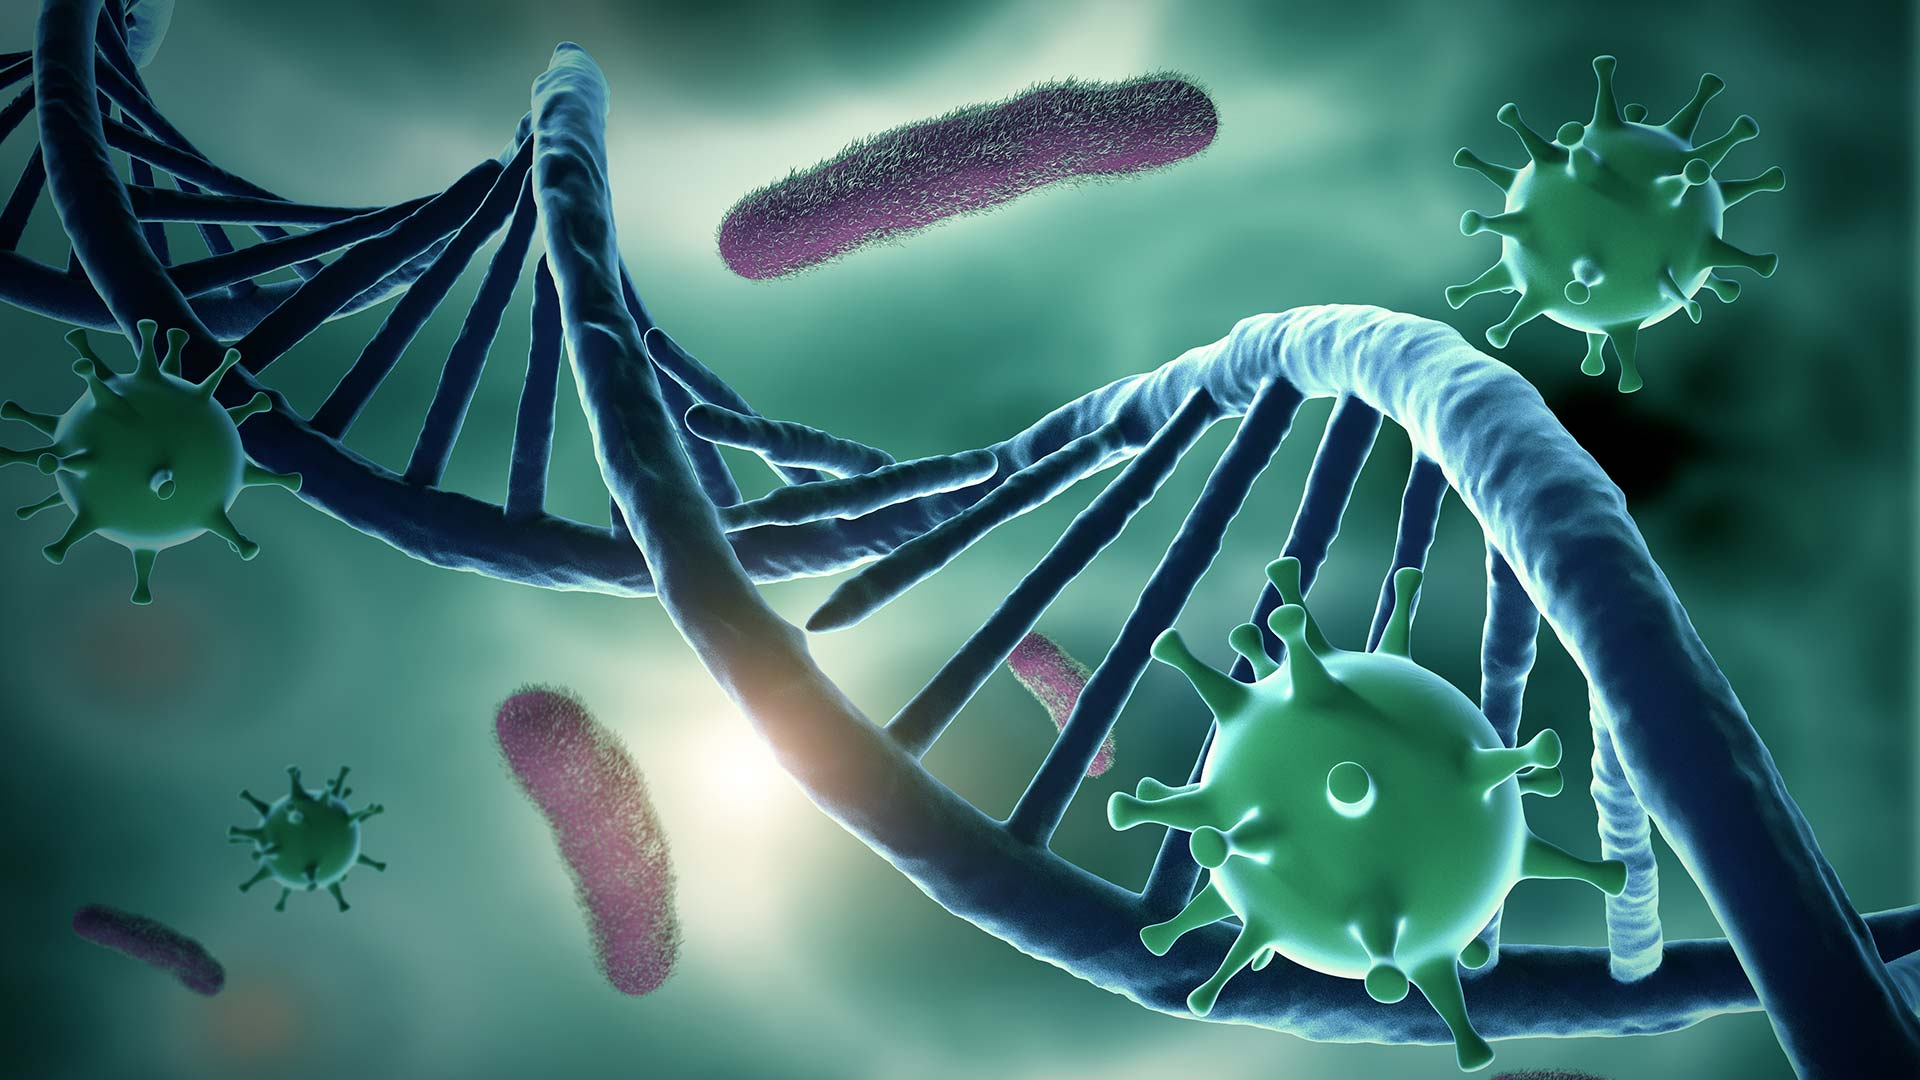 Image of DNA and viruses